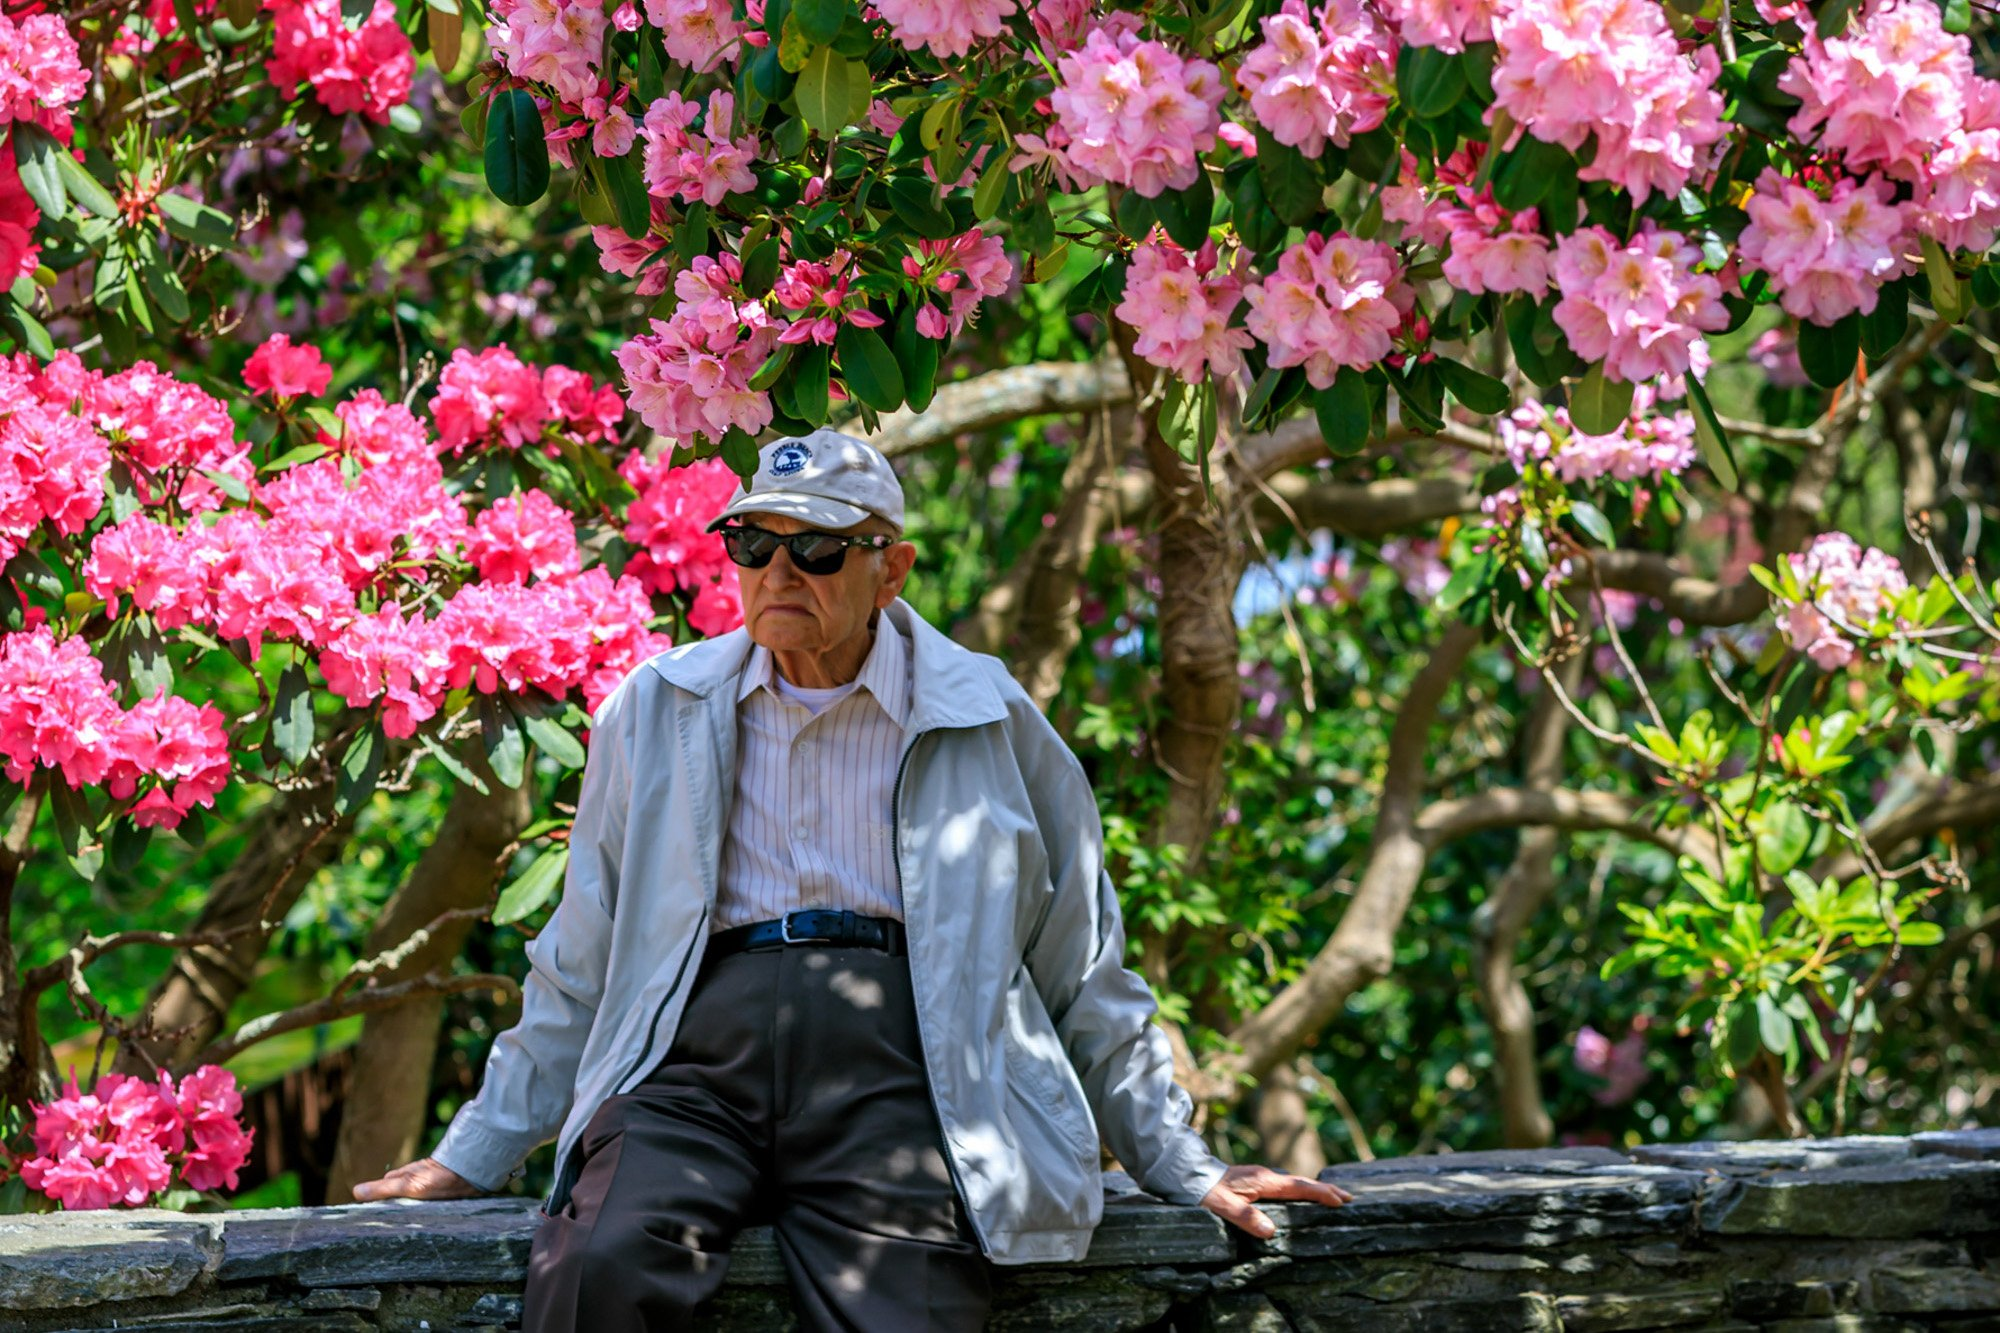 Man at Heritage with flowers